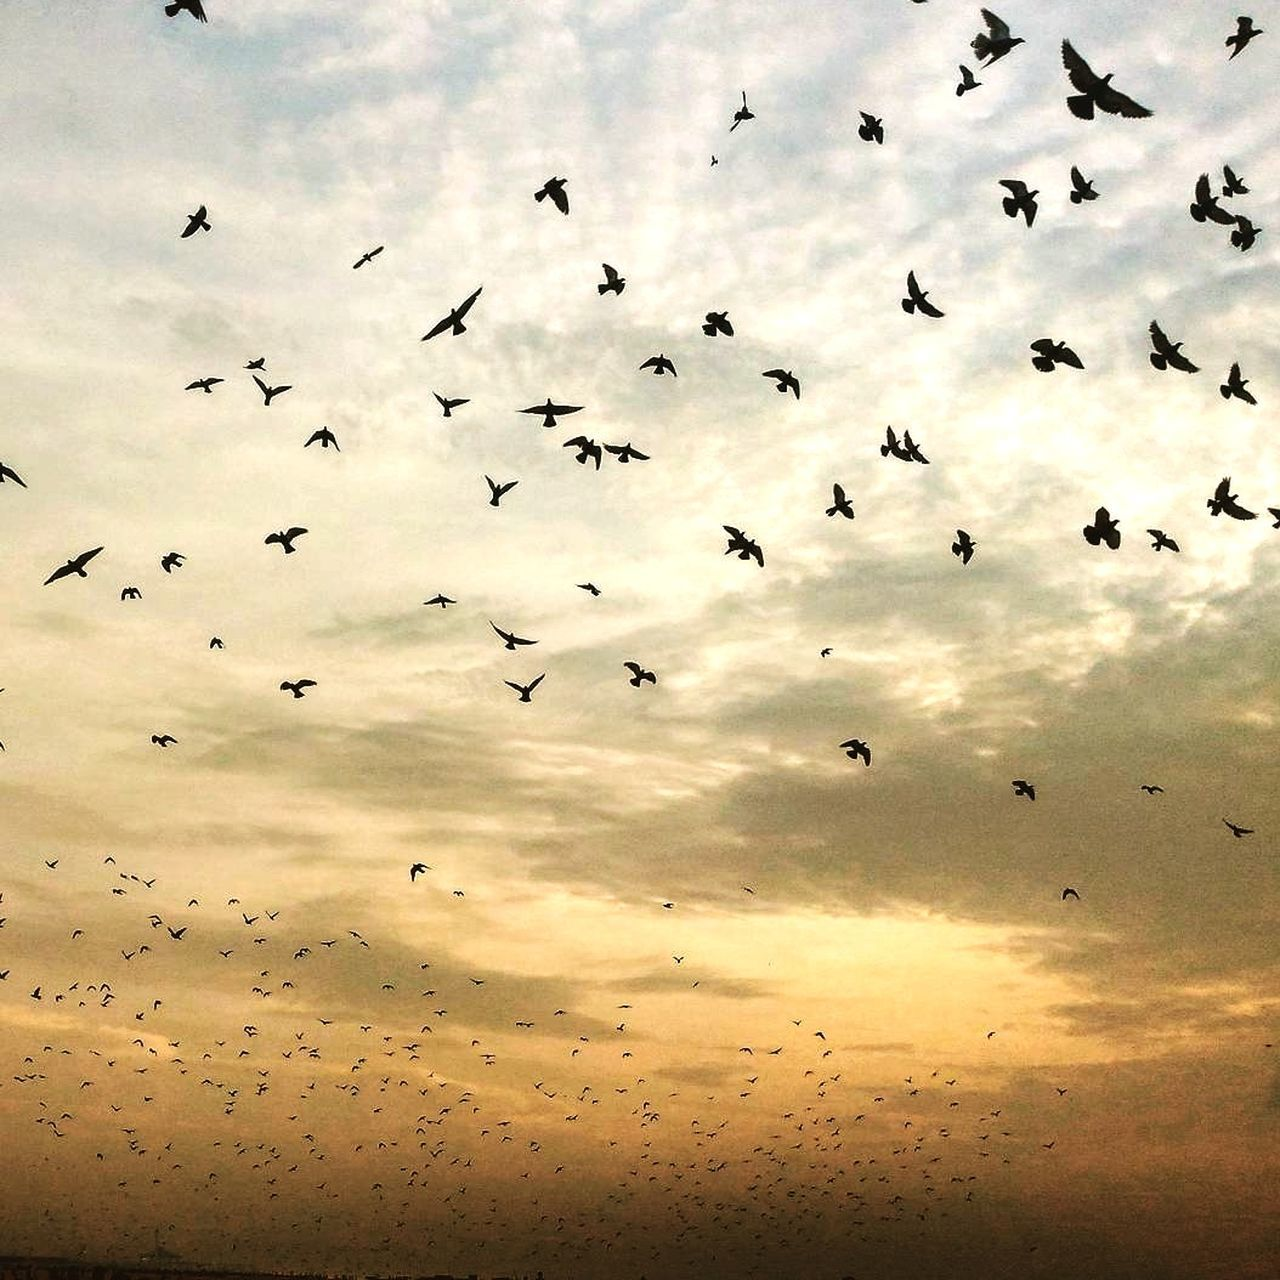 large group of animals, bird, flying, flock of birds, animals in the wild, animal themes, sky, migrating, mid-air, nature, beauty in nature, cloud - sky, wildlife, low angle view, animal wildlife, sunset, no people, outdoors, spread wings, silhouette, scenics, togetherness, day